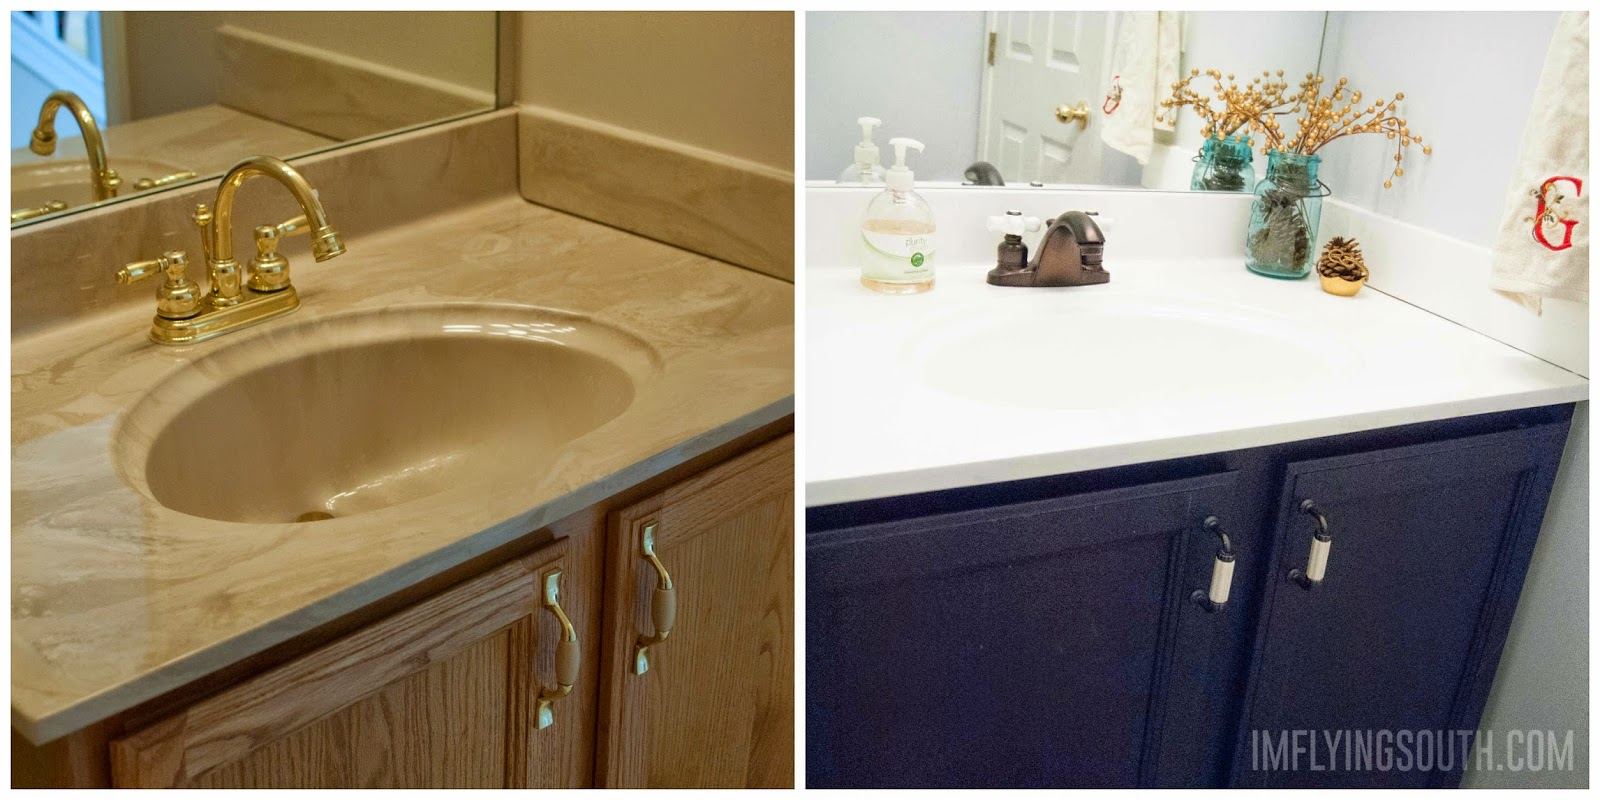 Painted Bathroom Sink Tutorial Before And After   Iu0027m Flying South Featured  On @